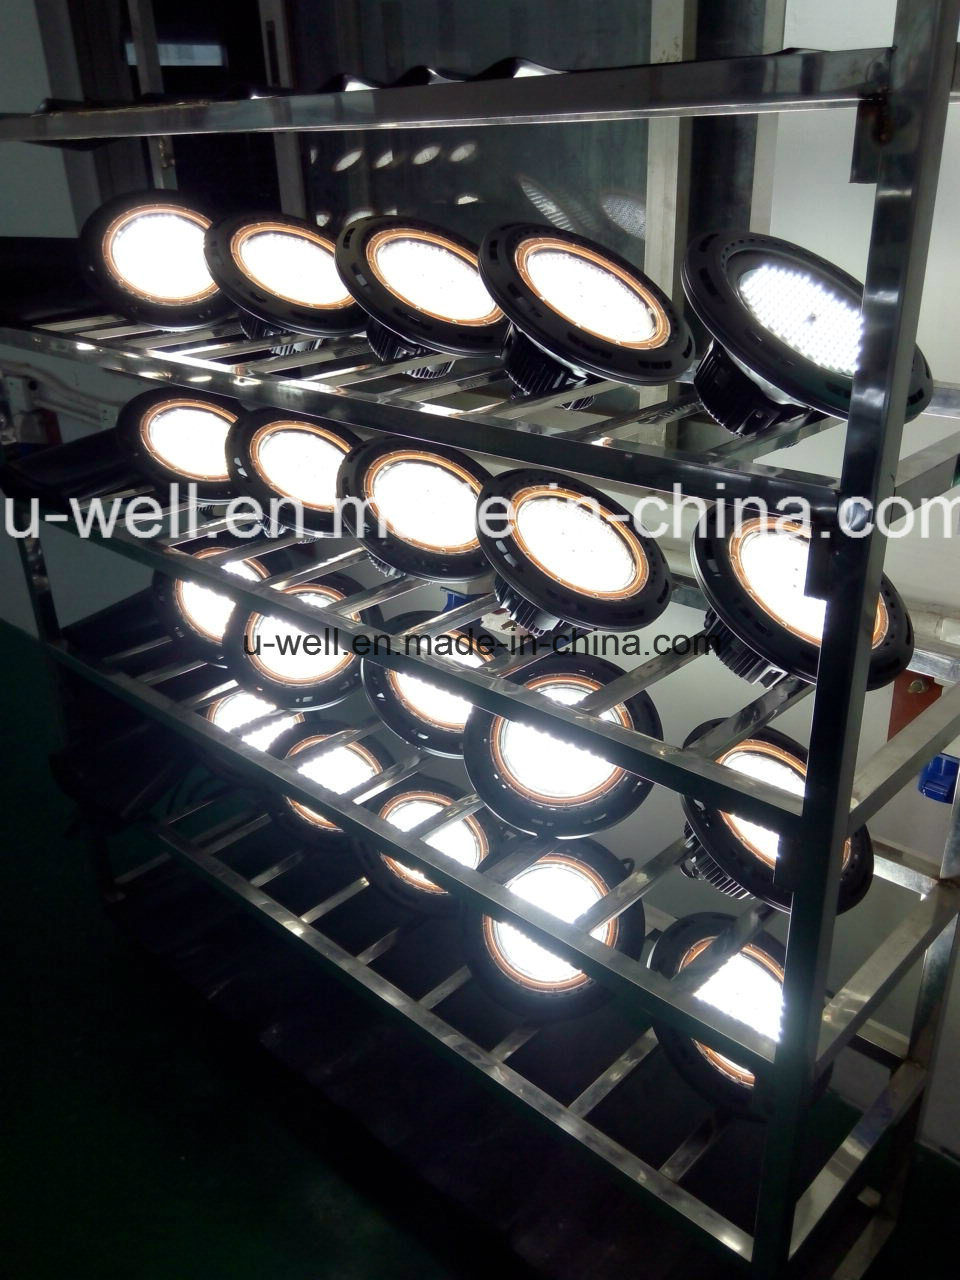 UFO LED Industrial Lighting 100W- 200W to Germany France South Africa